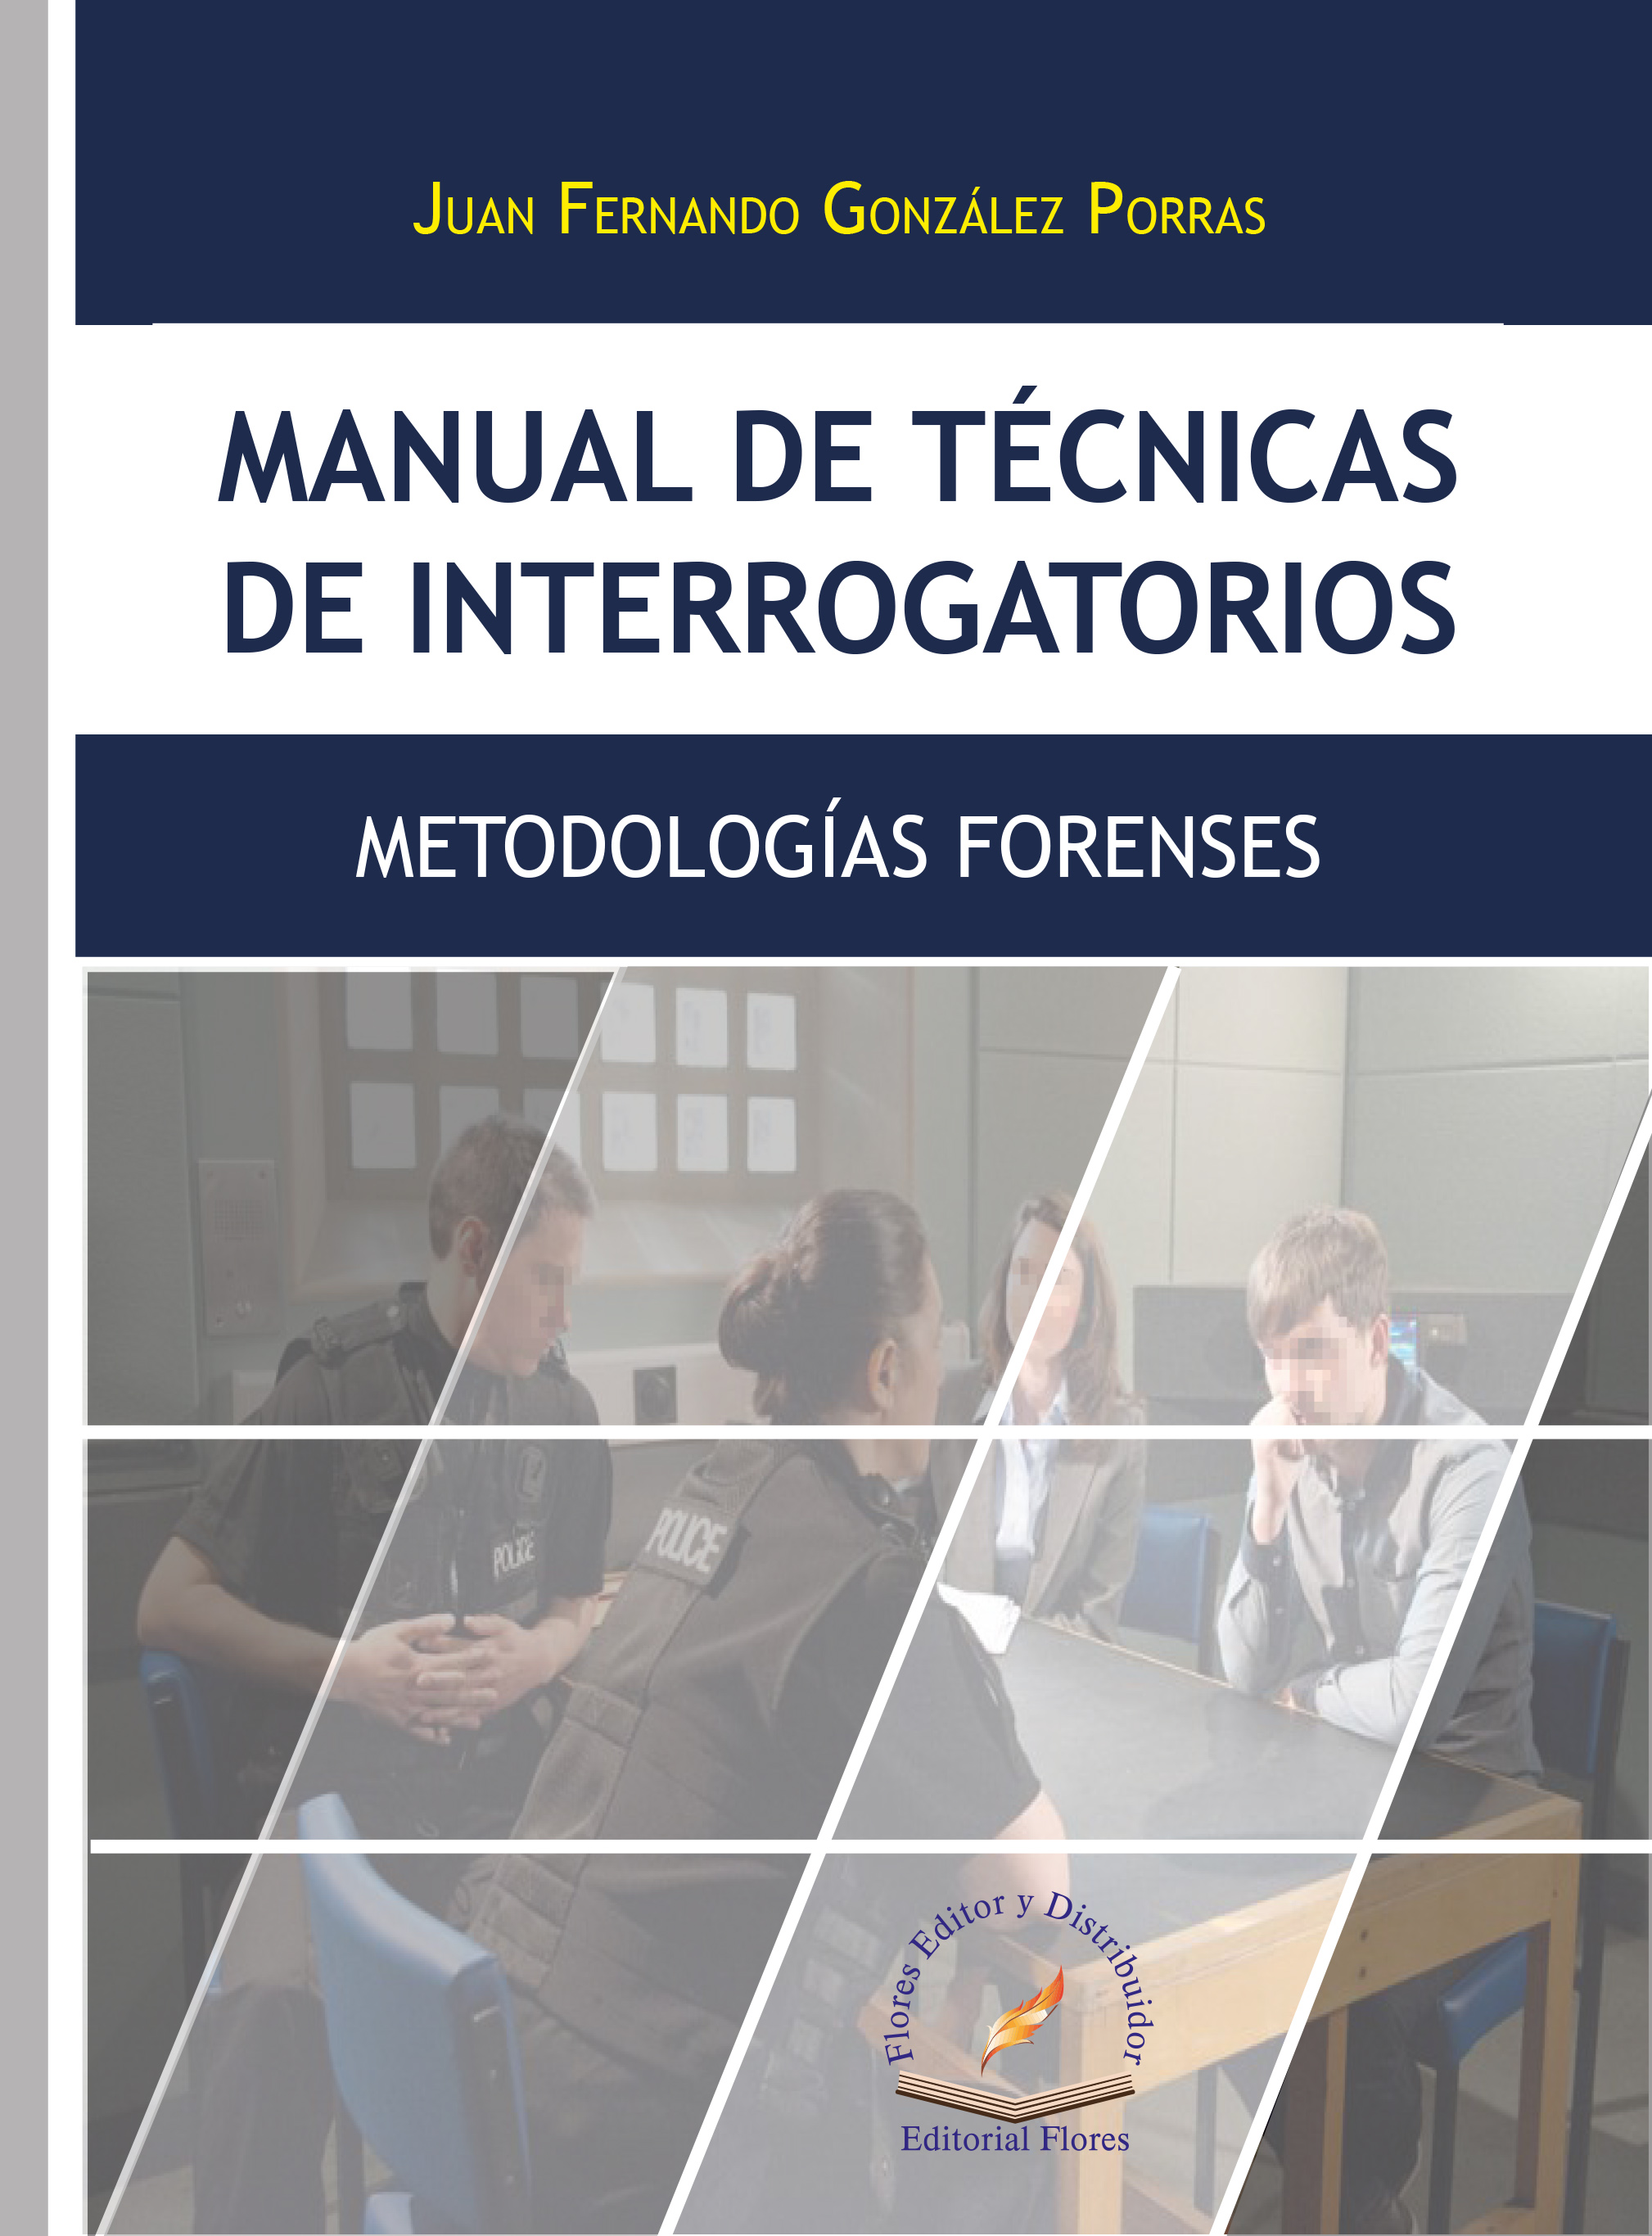 MANUAL DE TÉCNICAS DE INTERROGATORIOS